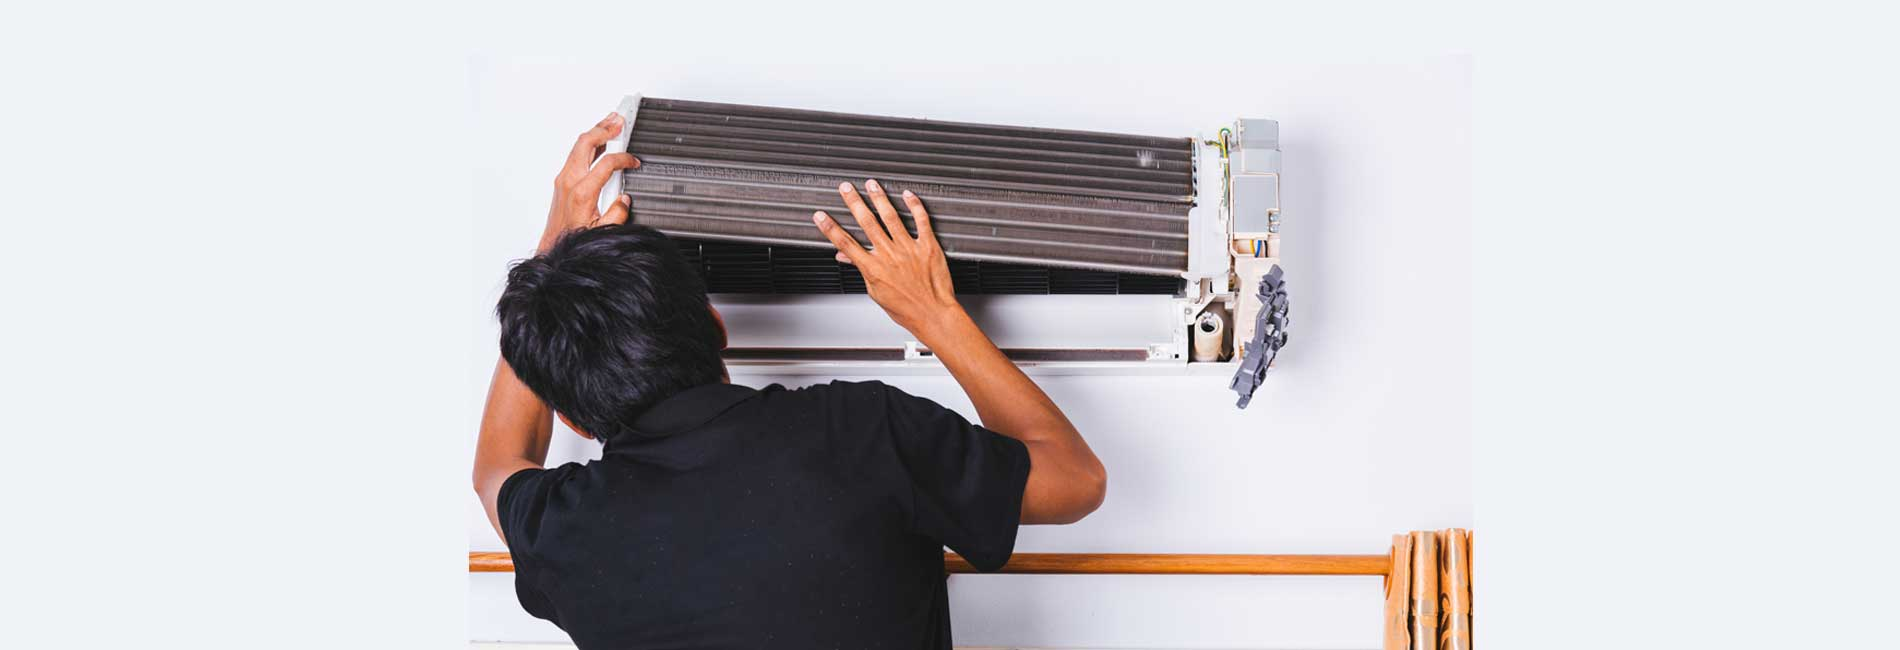 Panasonic Split AC Uninstallation in Ayanambakkam